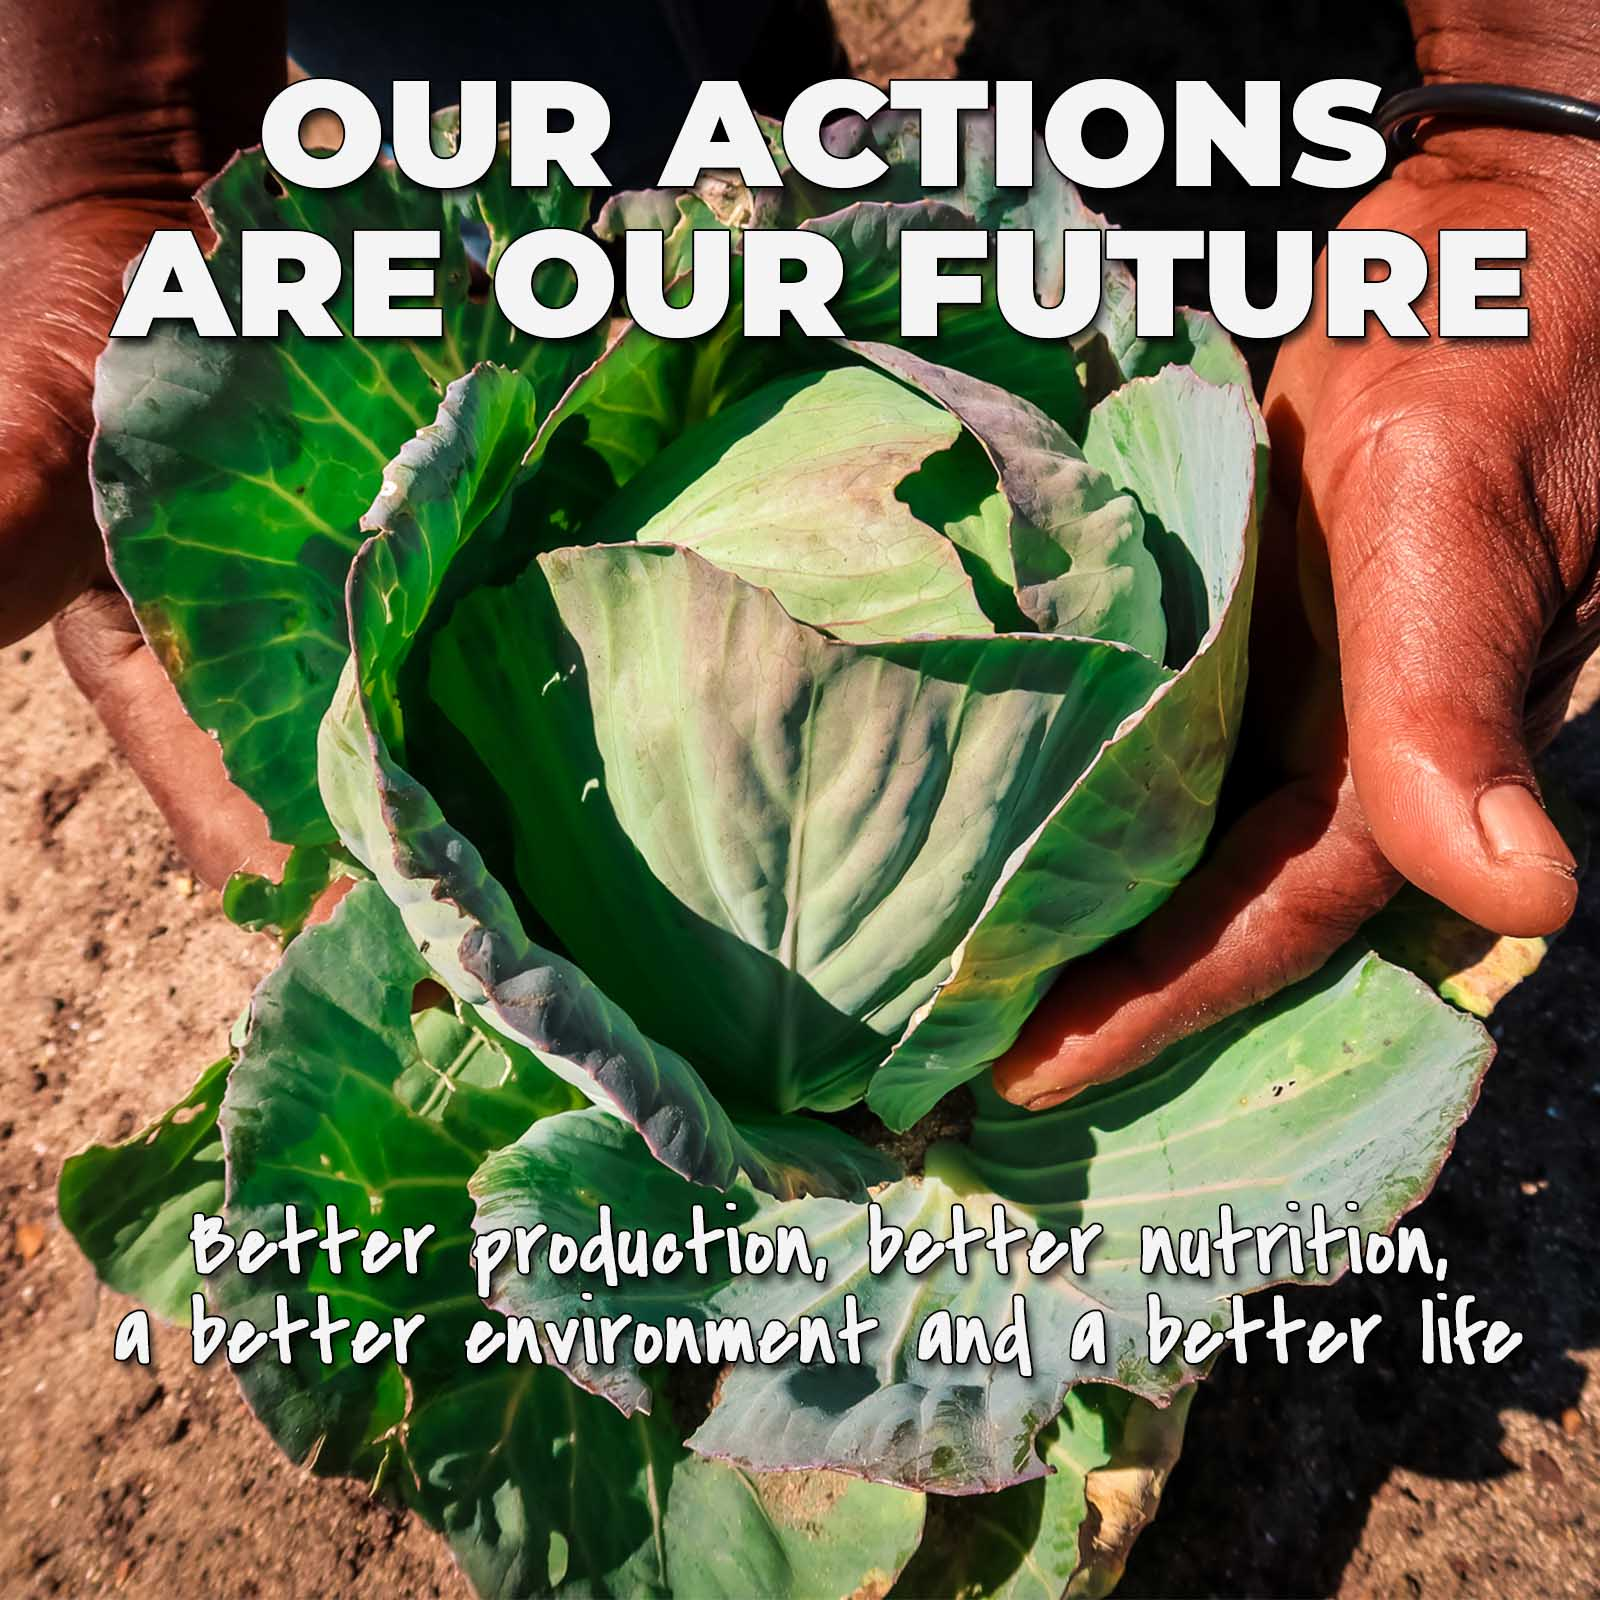 A pair of farmers hands holding a freshly grown lettuce on top of soil in cape town to develop our sustainable farming charities